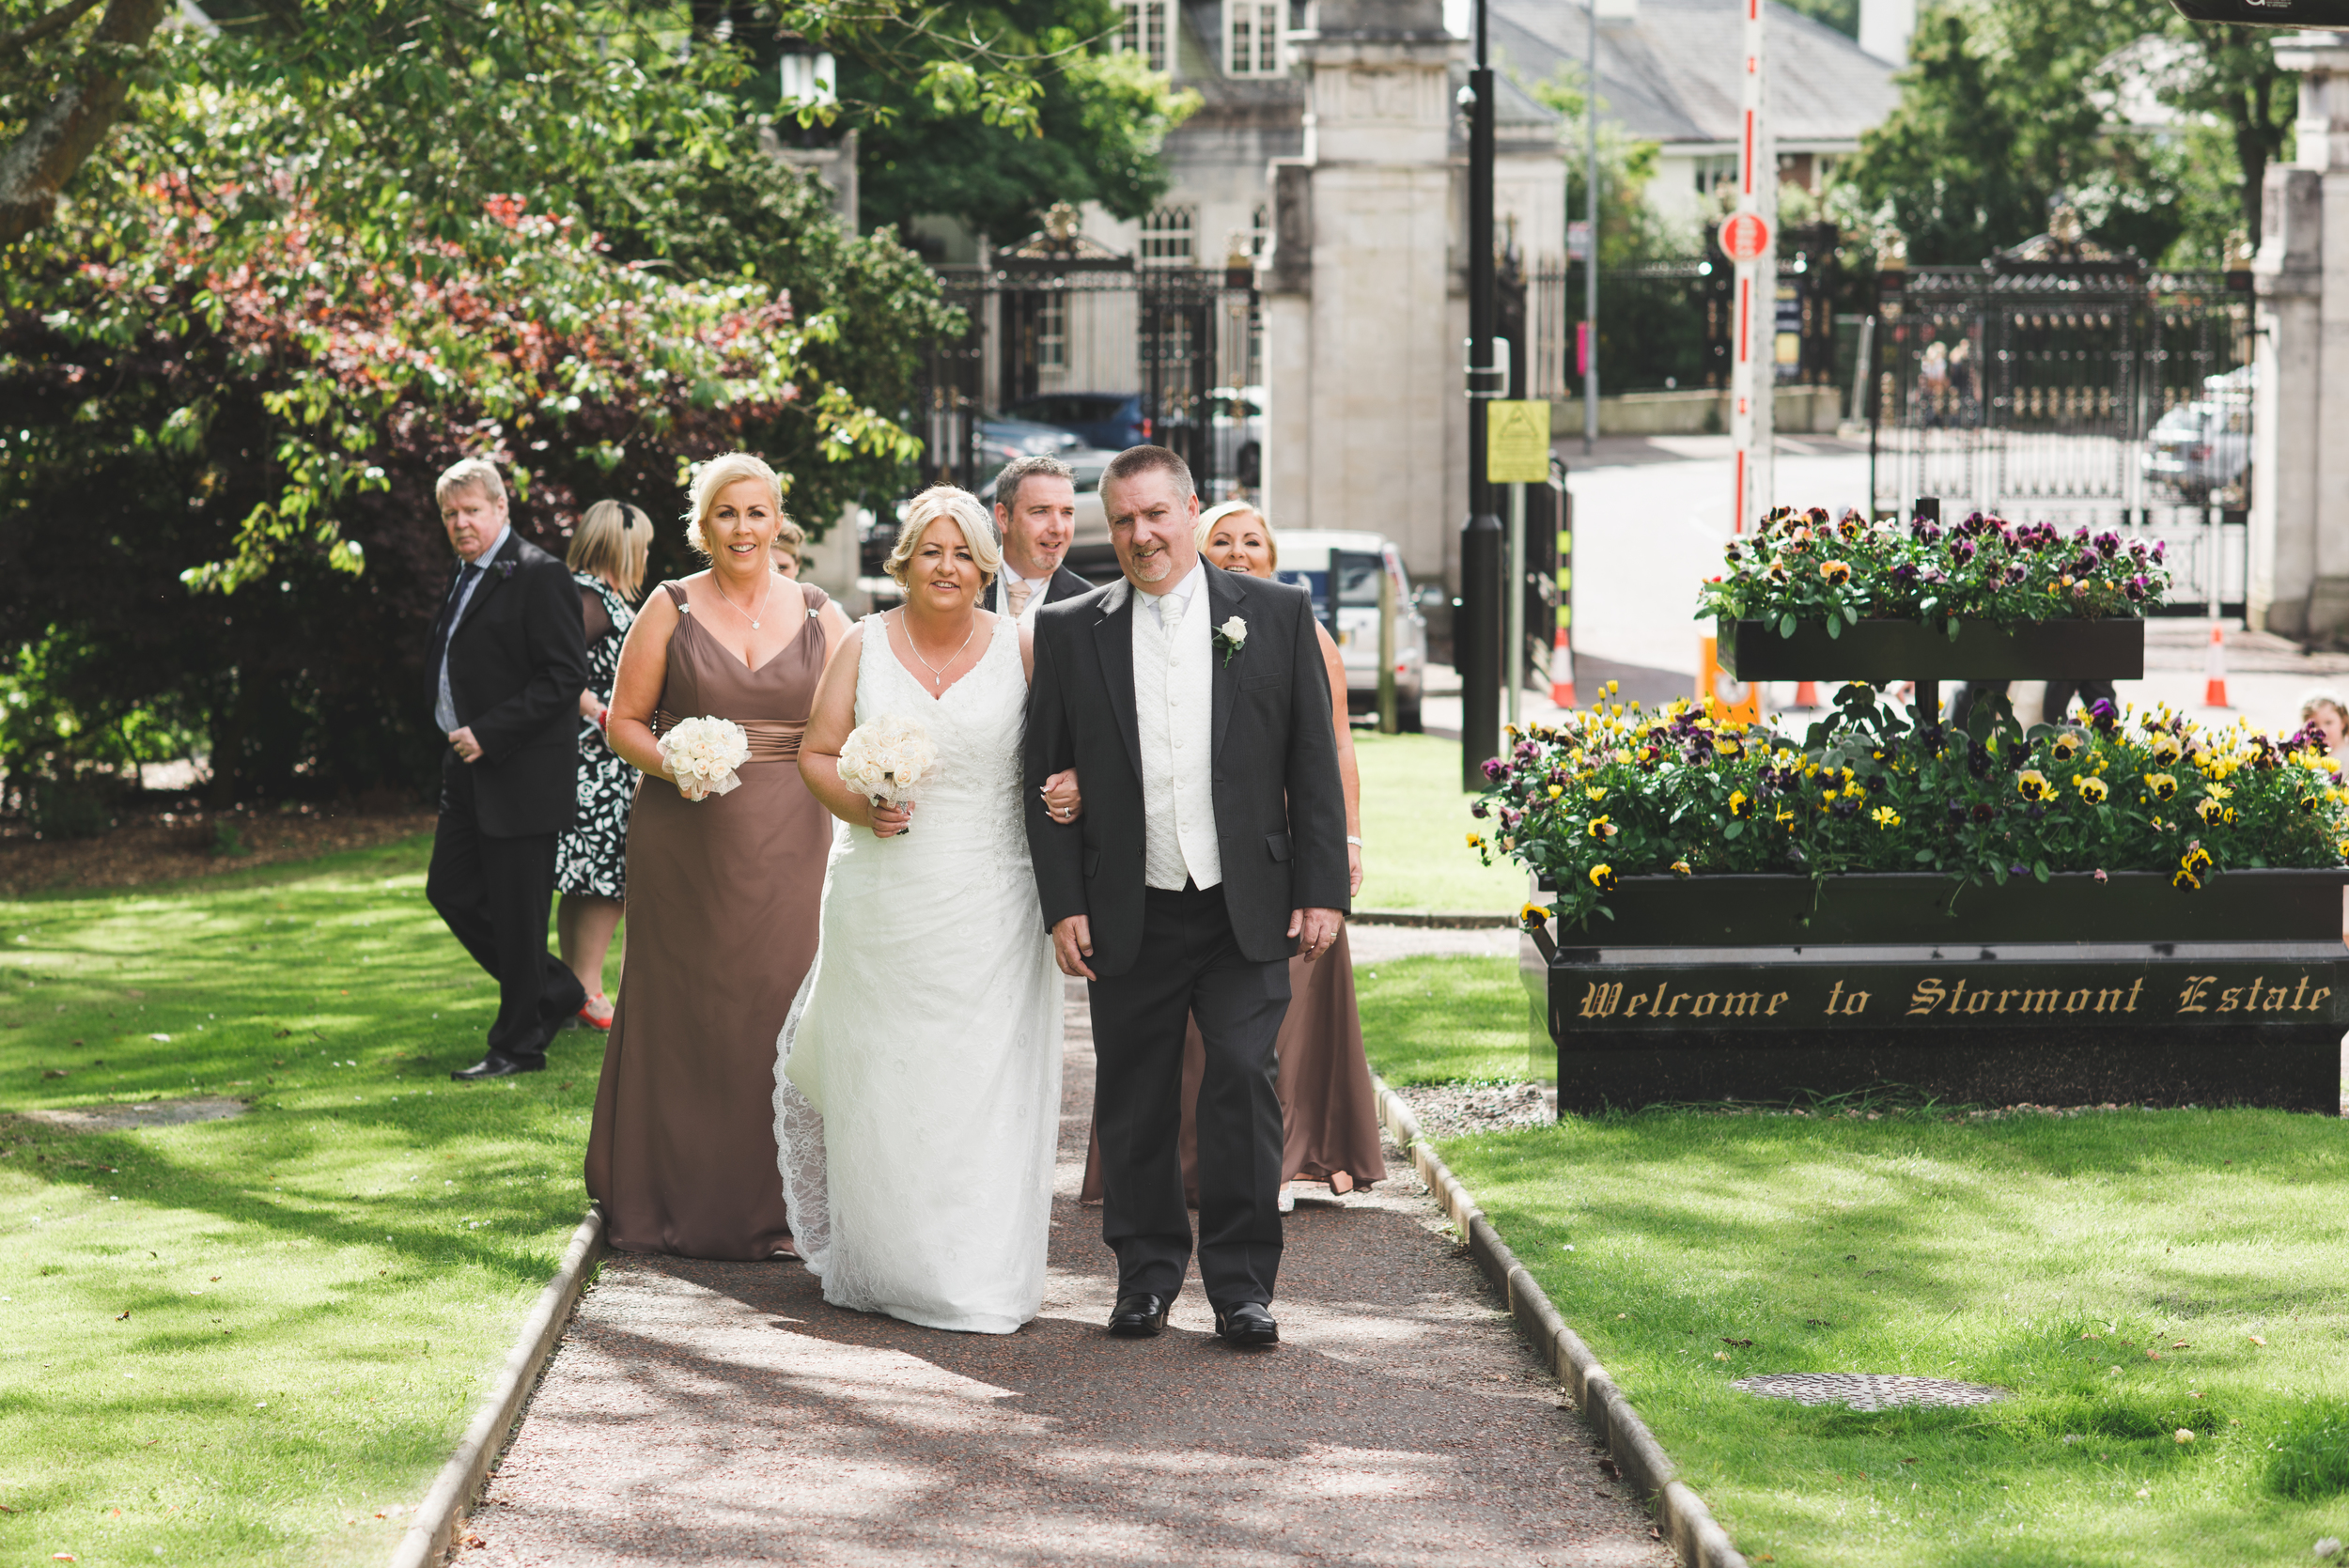 Stormont_Estate_Wedding_Photography_Welcome